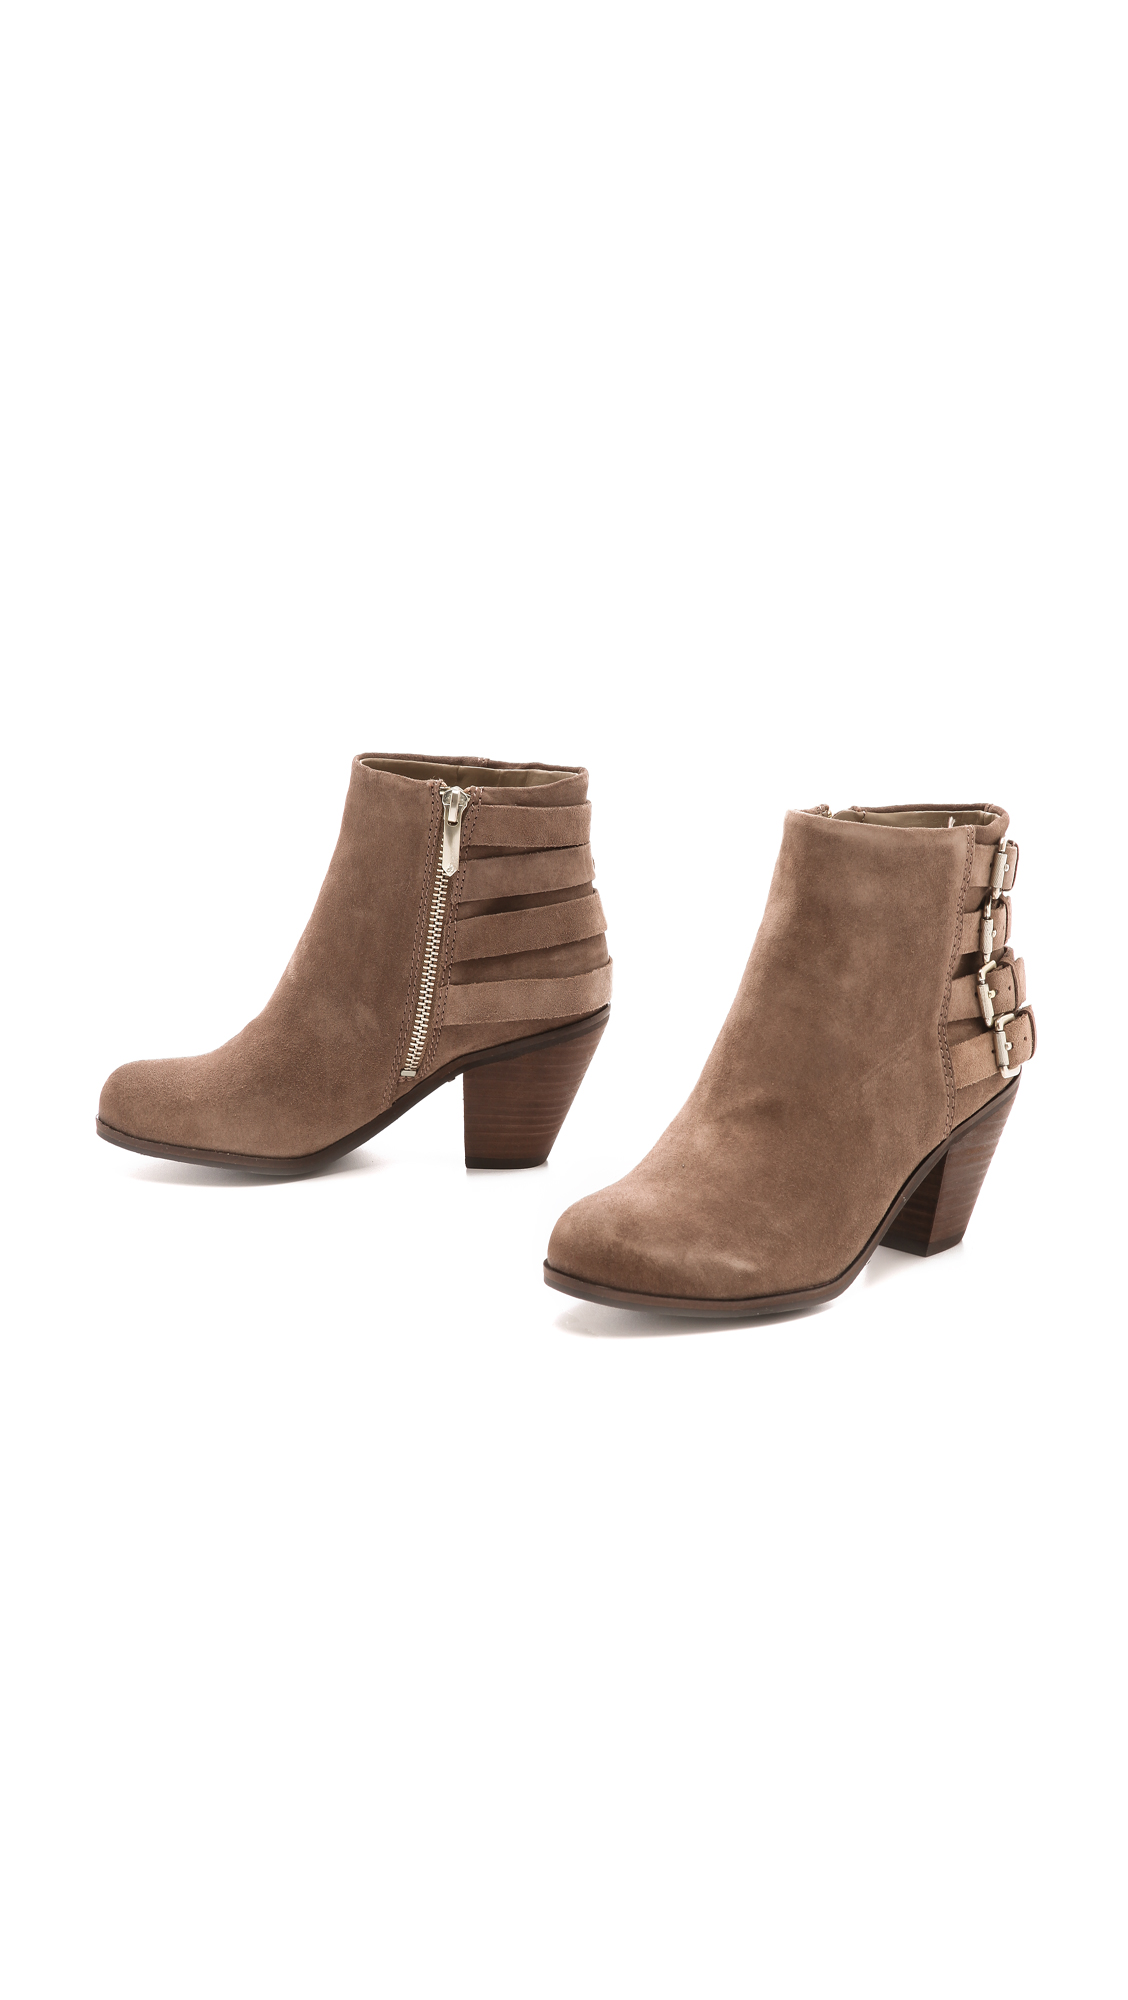 53d037838 Sam Edelman Lucca 4 Buckle Booties